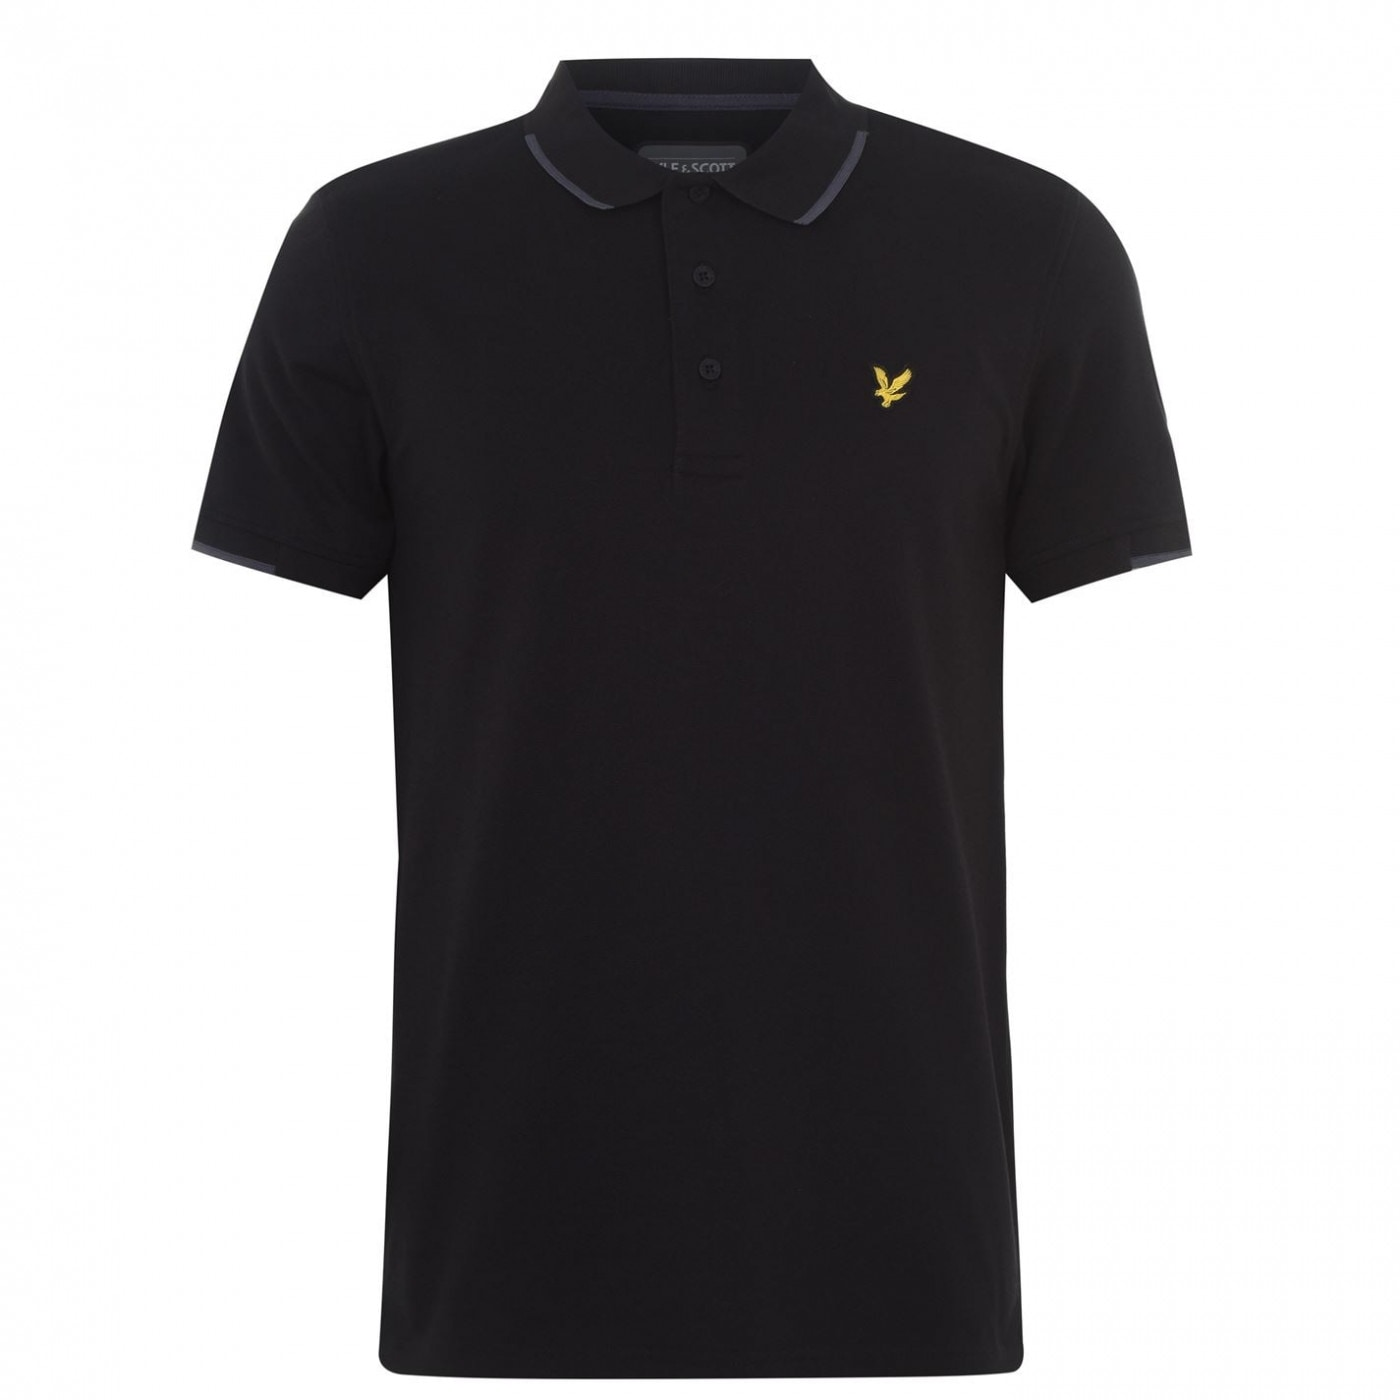 Lyle and Scott Golf Polo Shirt